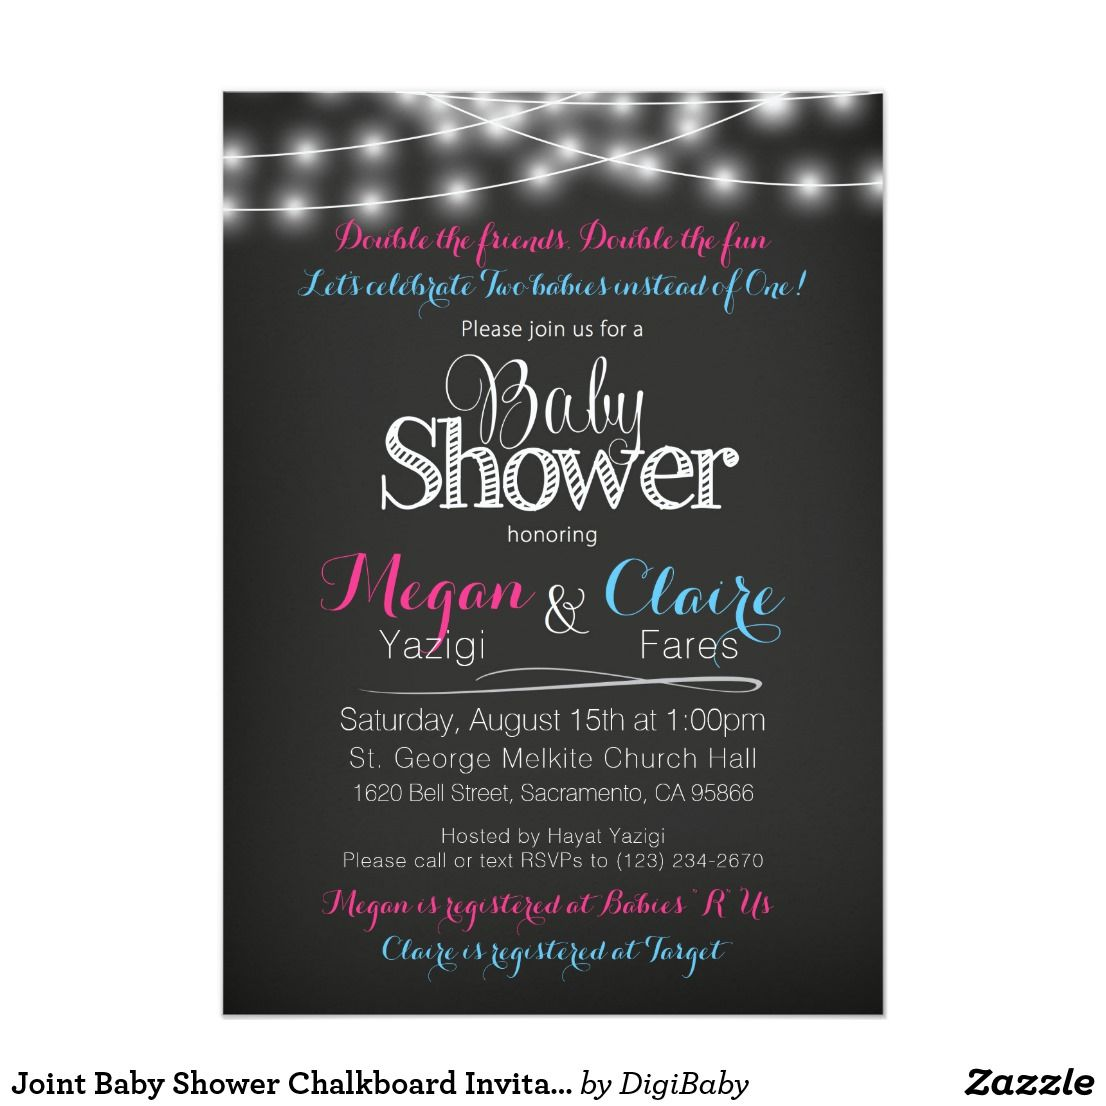 Joint Baby Shower Chalkboard Invitation with Book Card on back. #jointbabyshower #babyshowerfriends #coed #unique #customcolors #zazzle #invitations